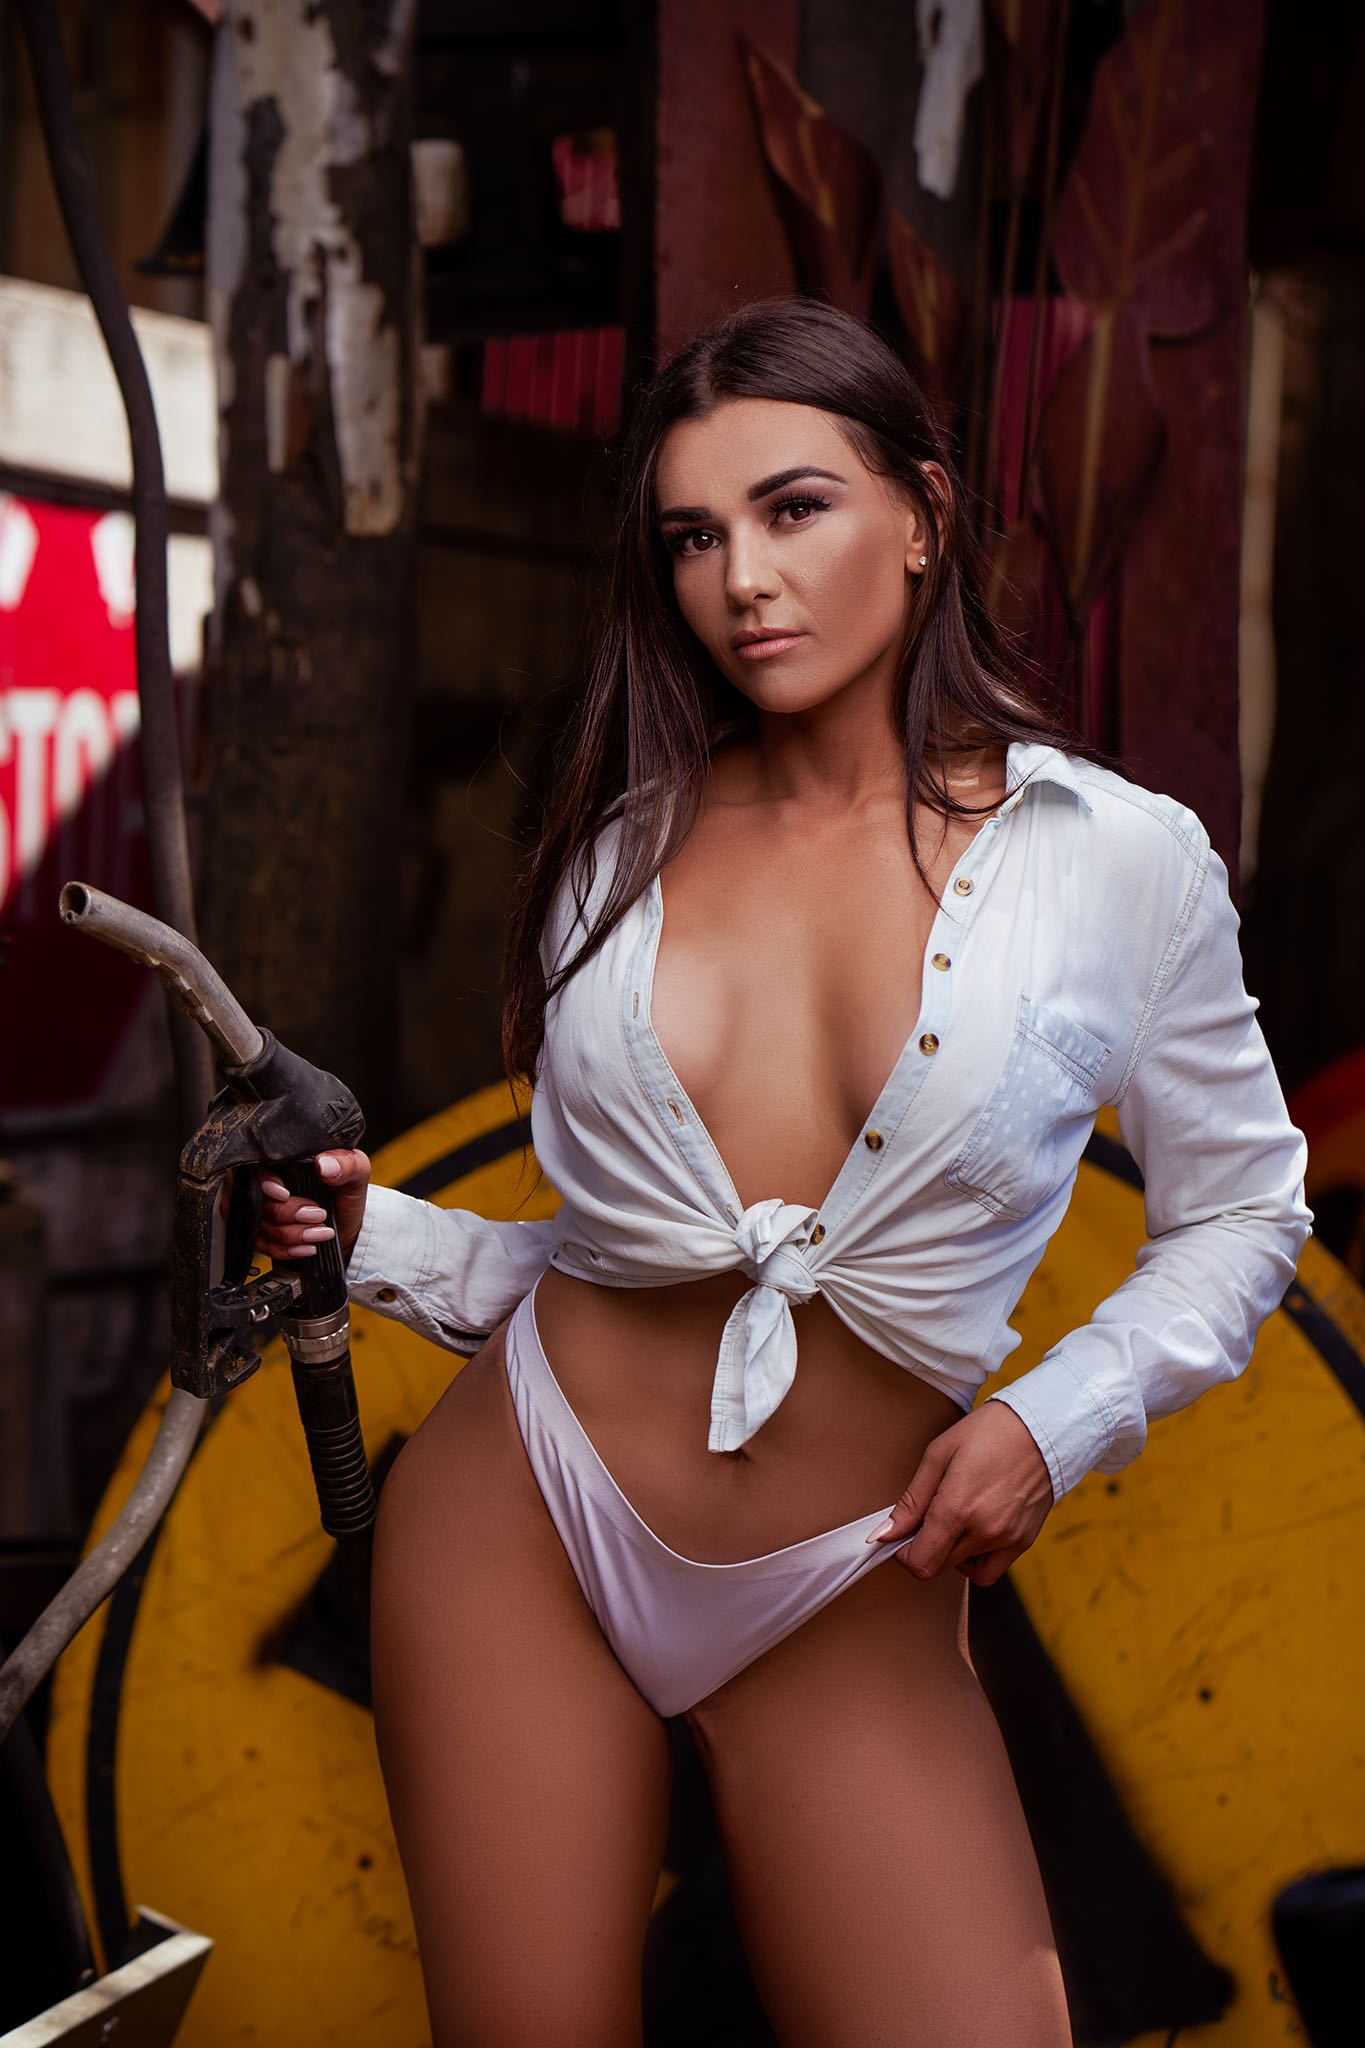 Meet Yvette Ferreira in our South African Babes feature